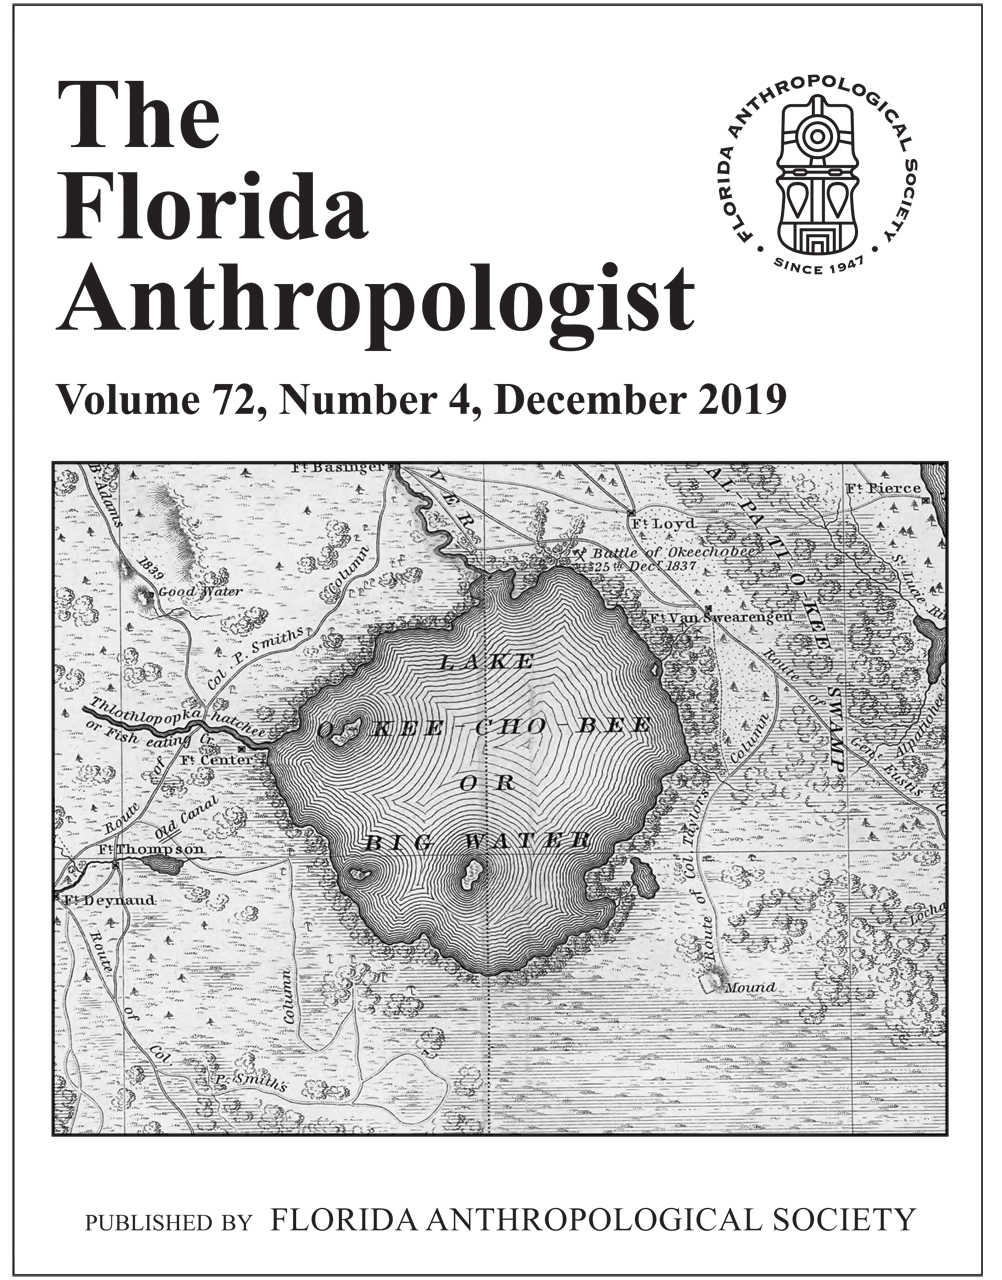 The Florida Anthropologist Volume 72, Number 4 (PDF Digital Download)